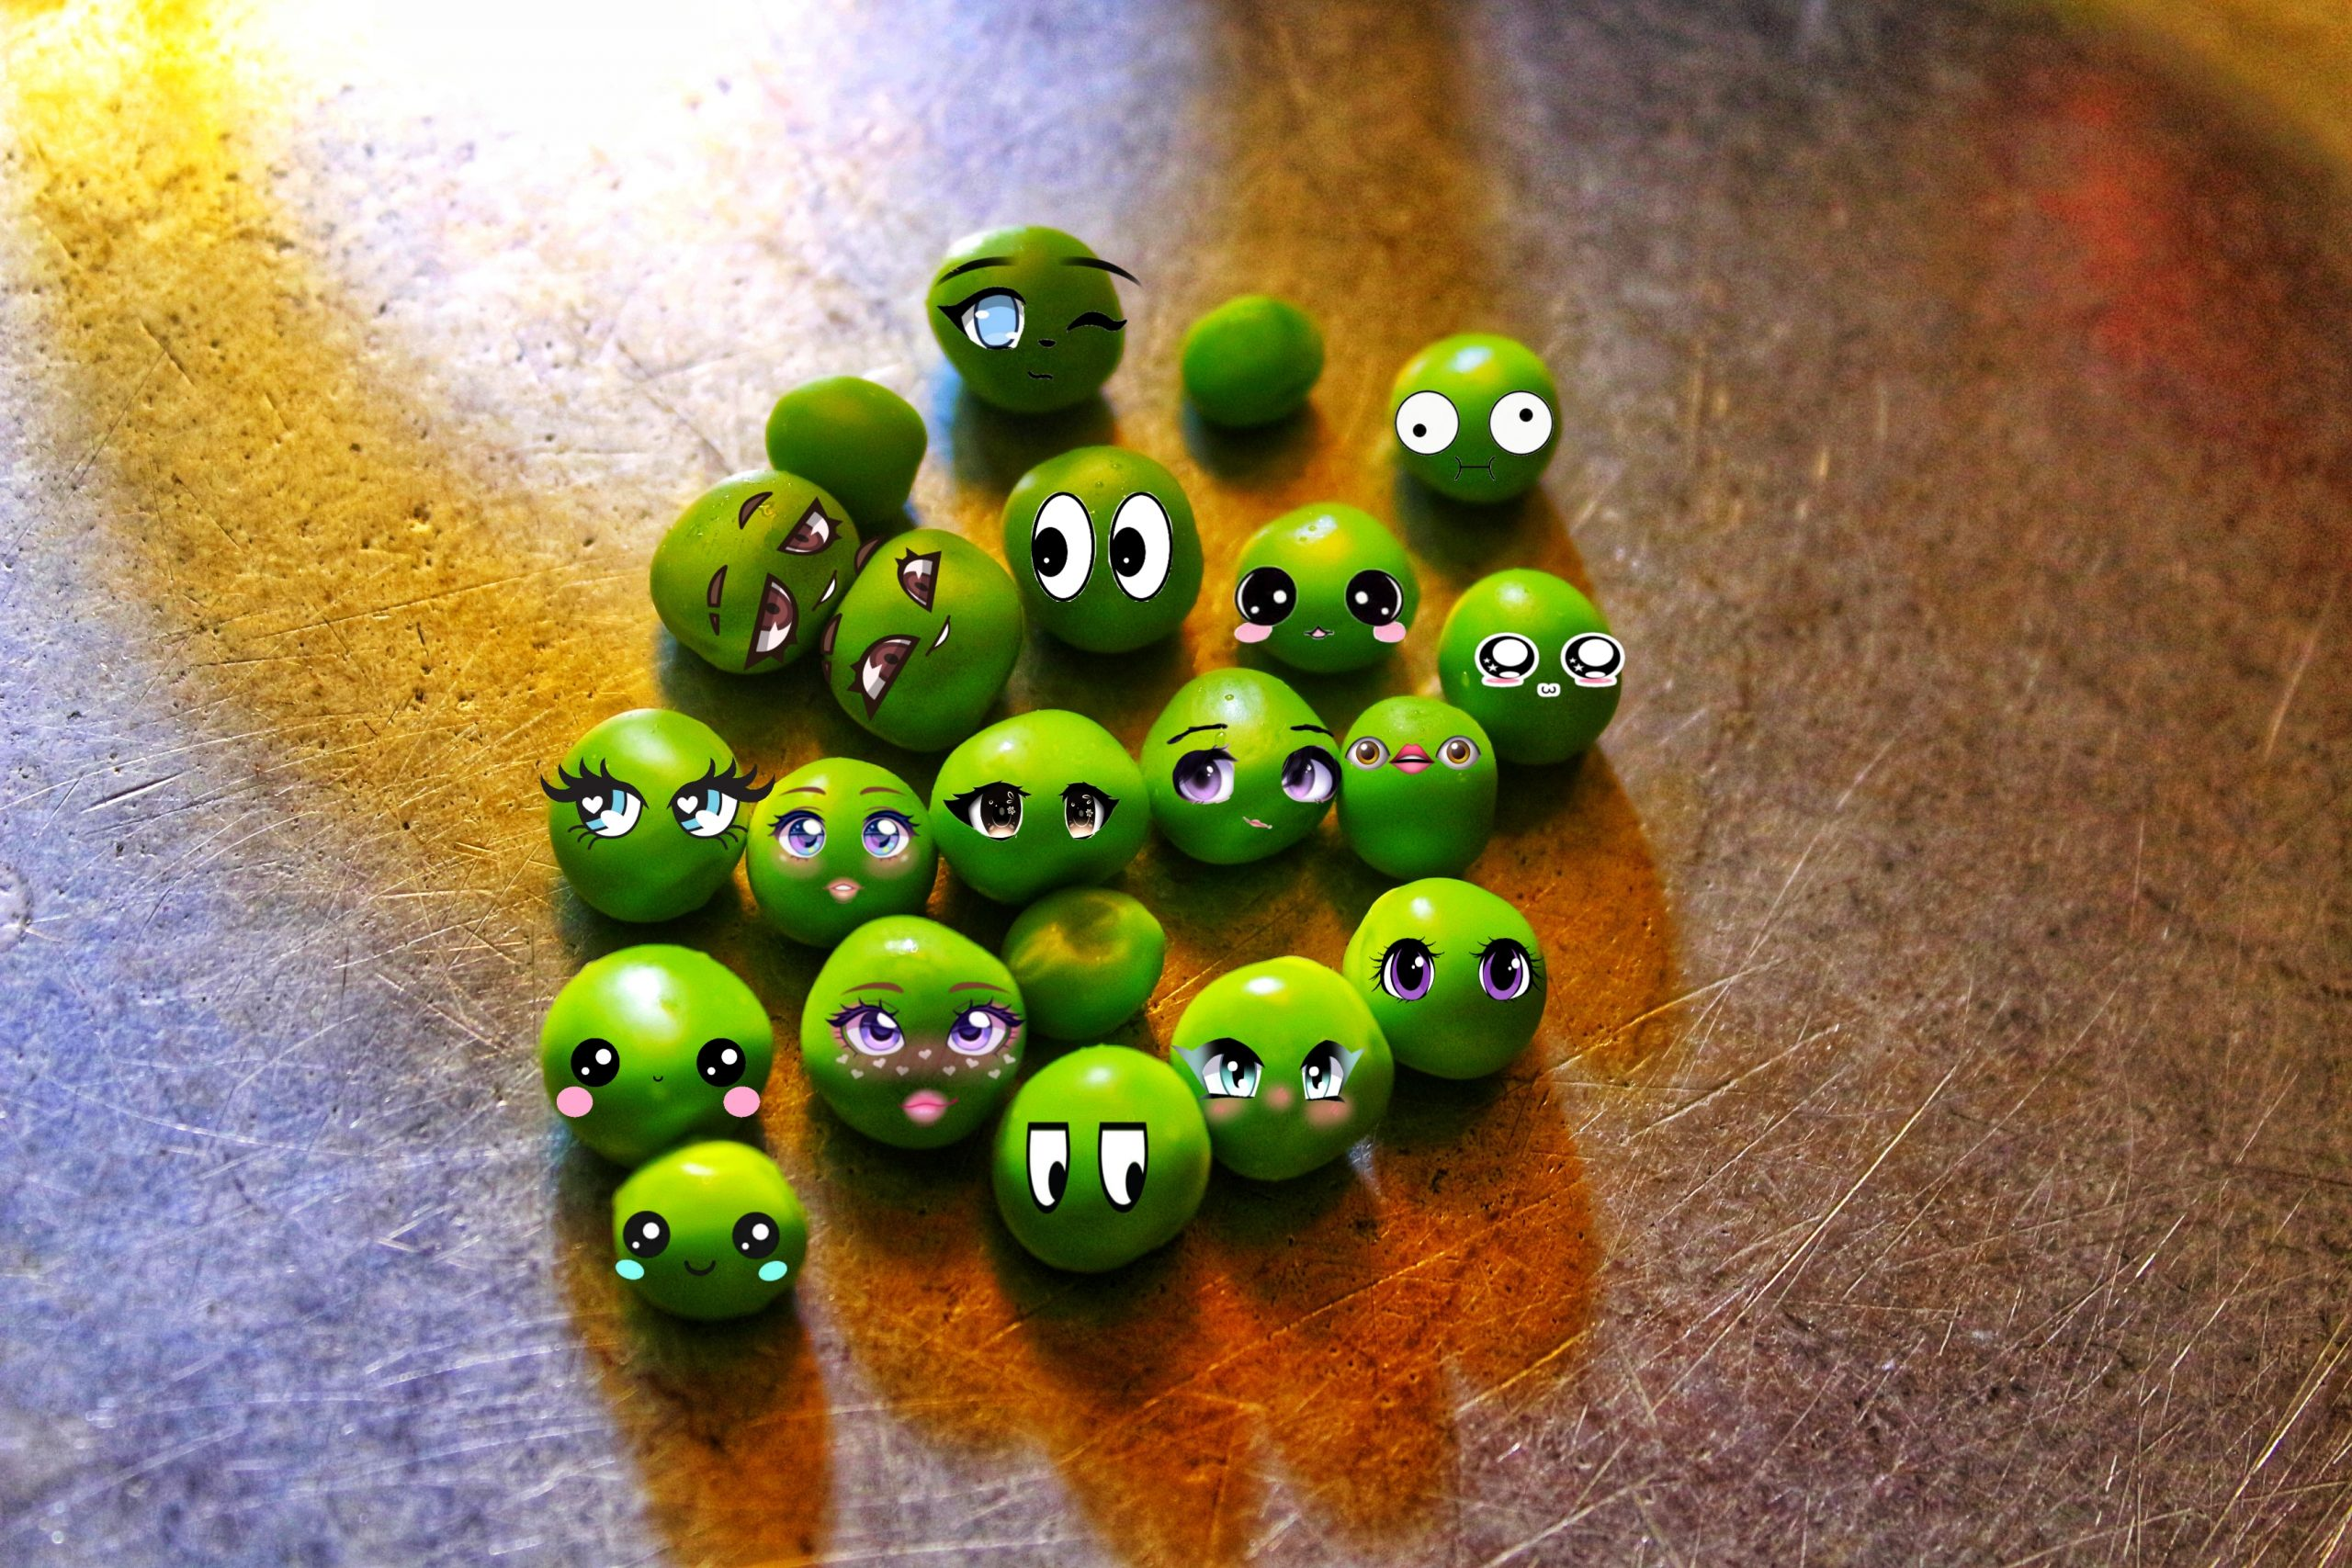 Human face expression on green peas